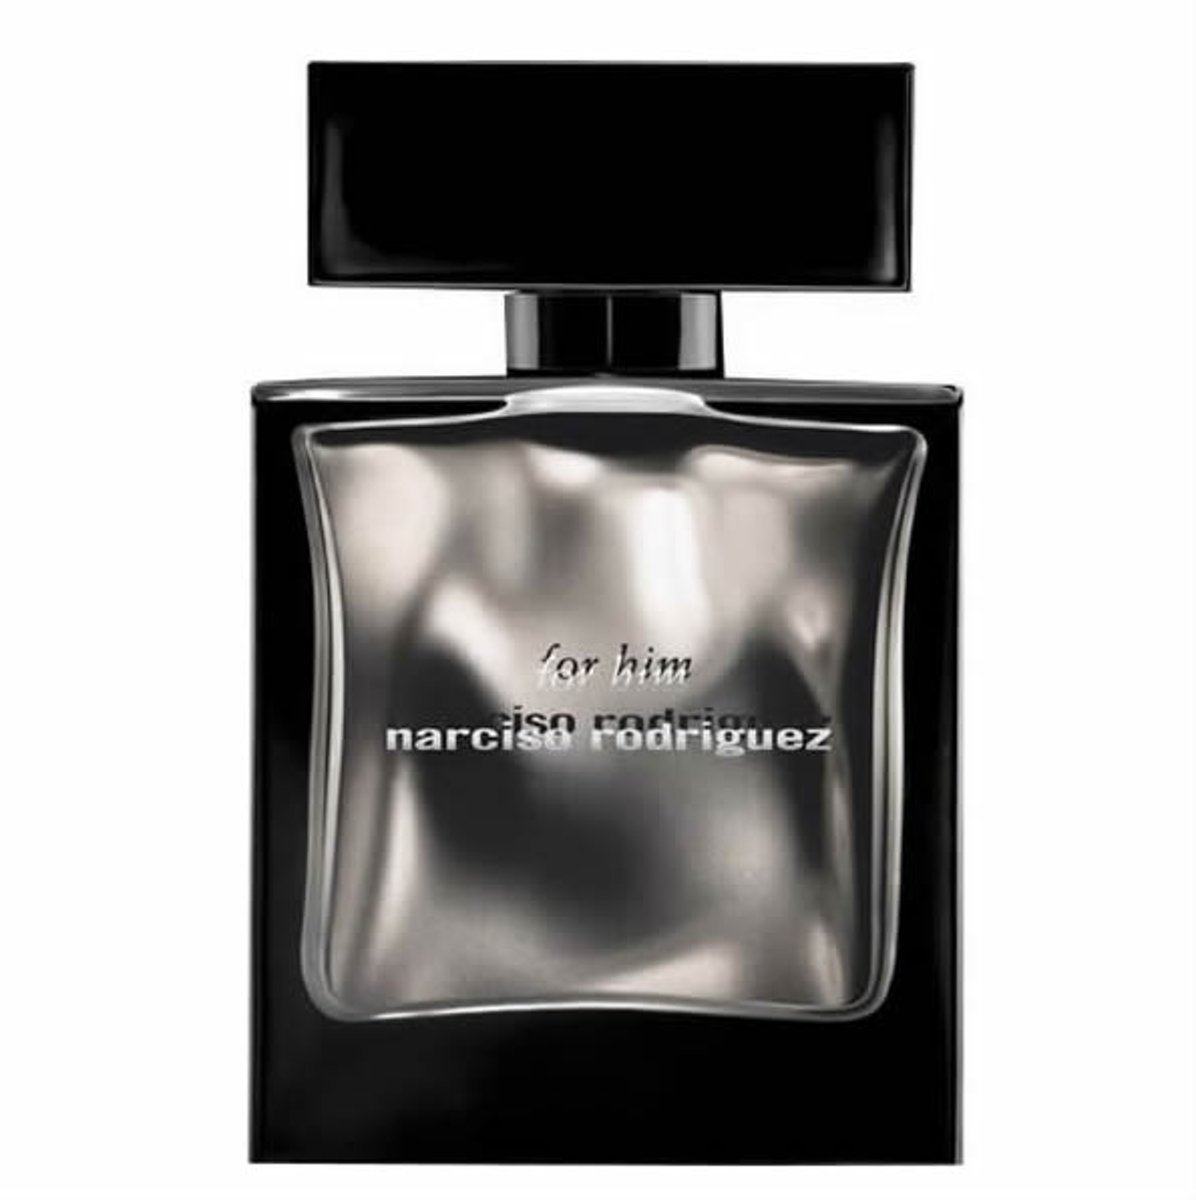 MULTI BUNDEL 2 stuks Narciso Rodriguez For Him Eau De Perfume Spray 100ml